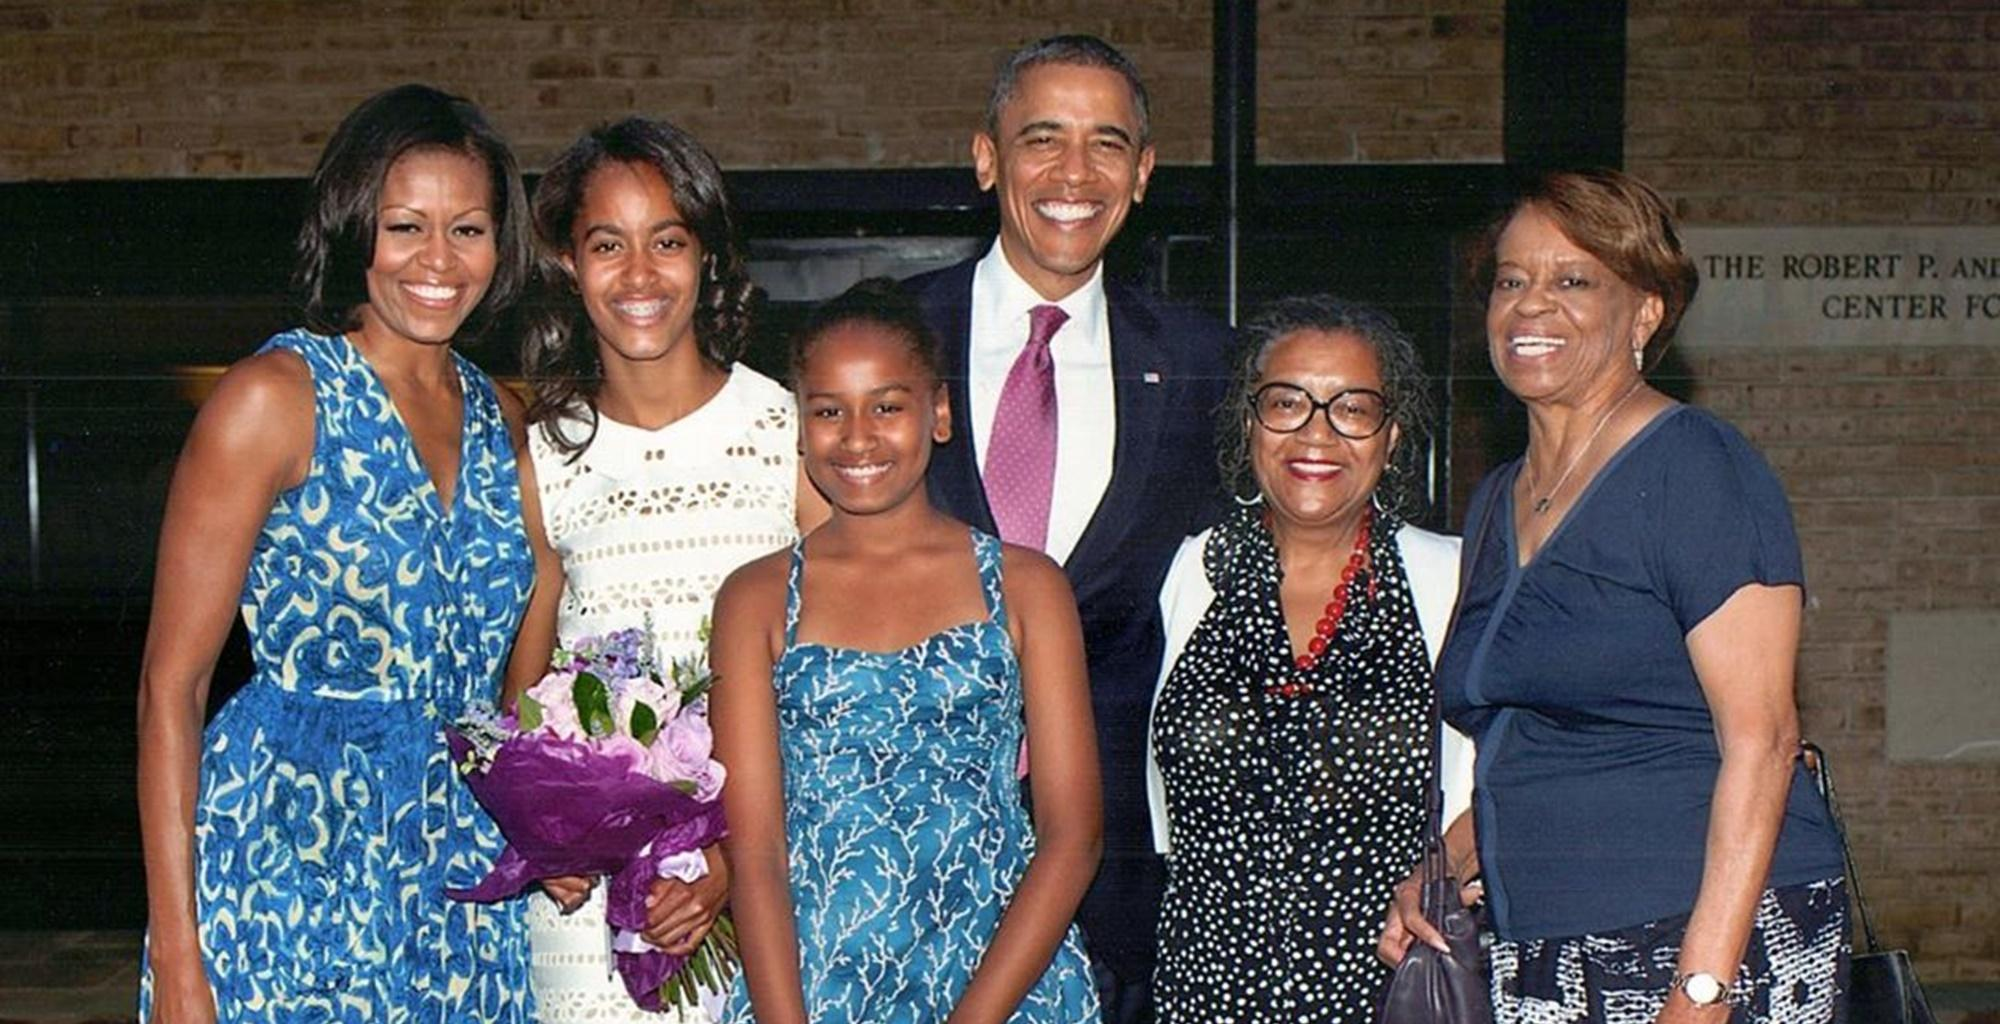 Michelle Obama Shares Mother's Day Picture With Daughters Malia And Sasha